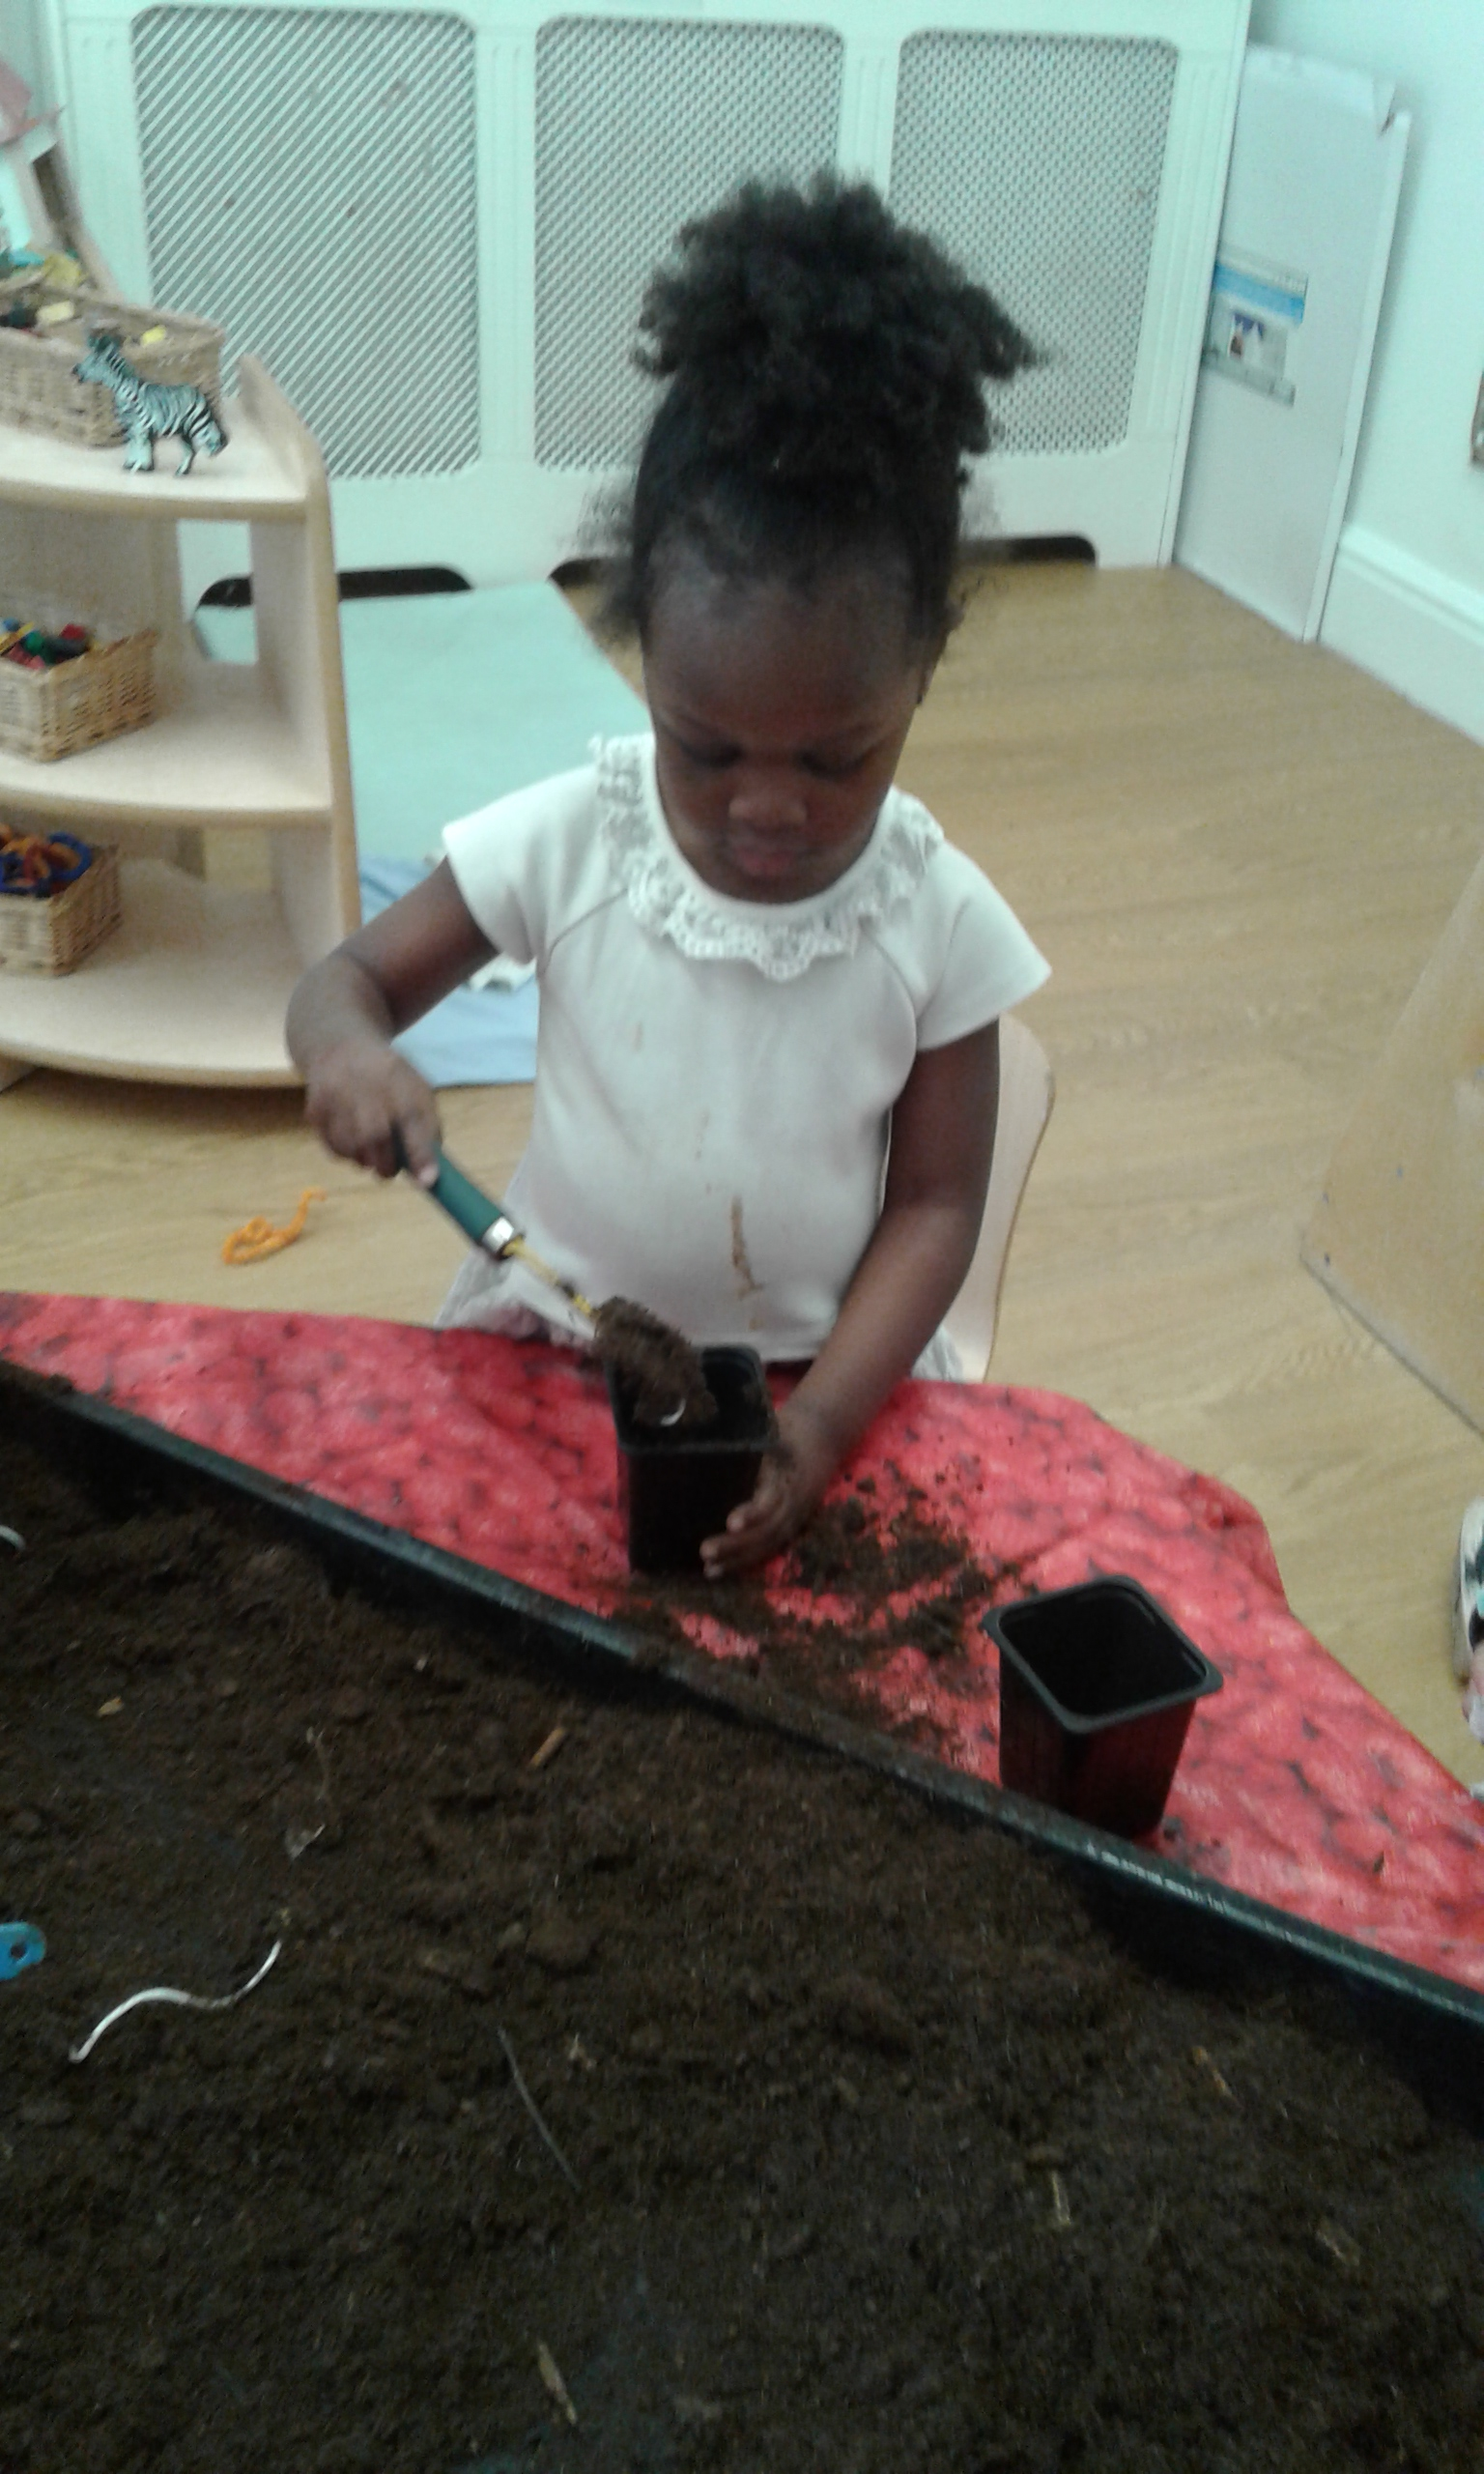 The children have shown great interest in exploring nature and living things